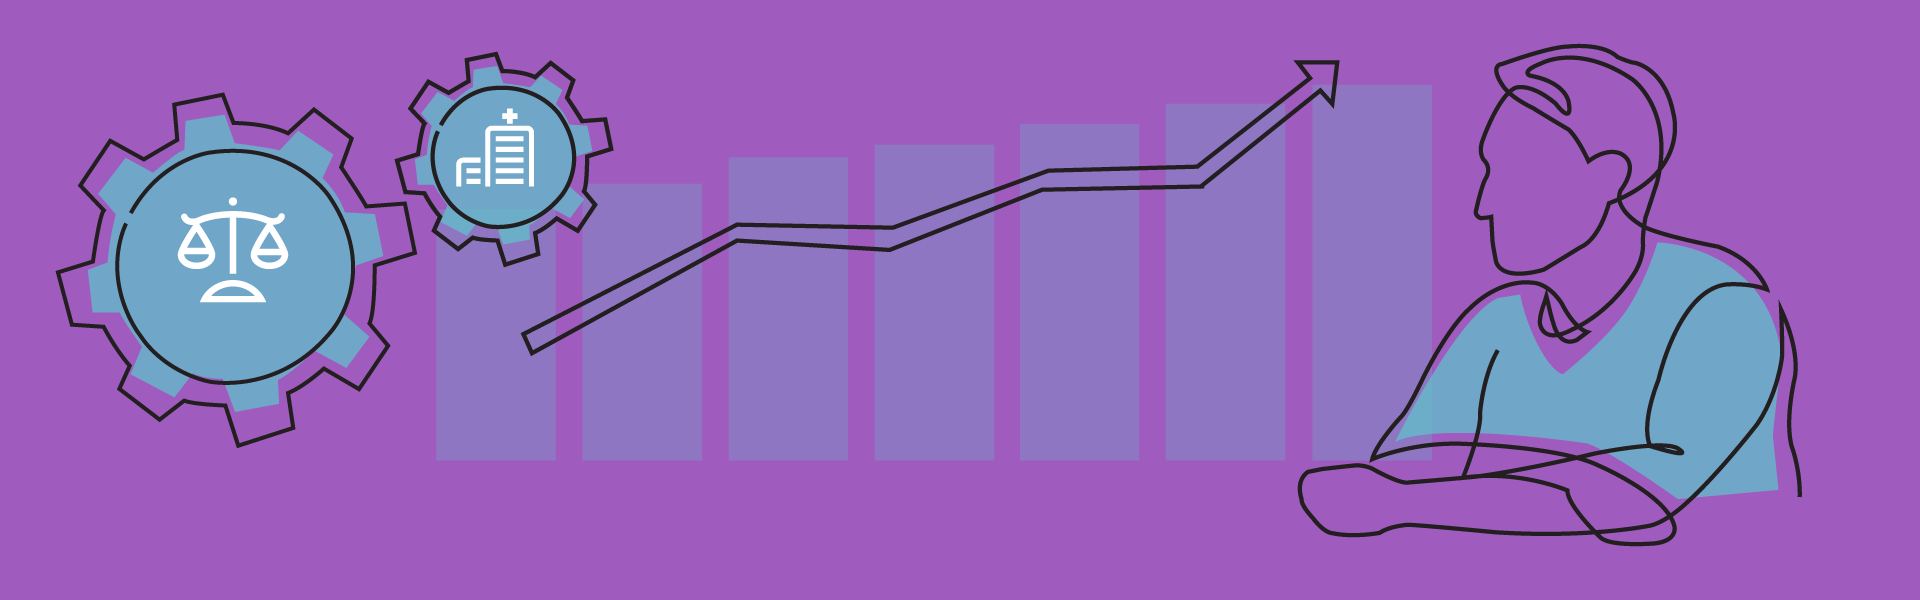 outline drawing of man over bar chart showing increase with balanced scales for equity